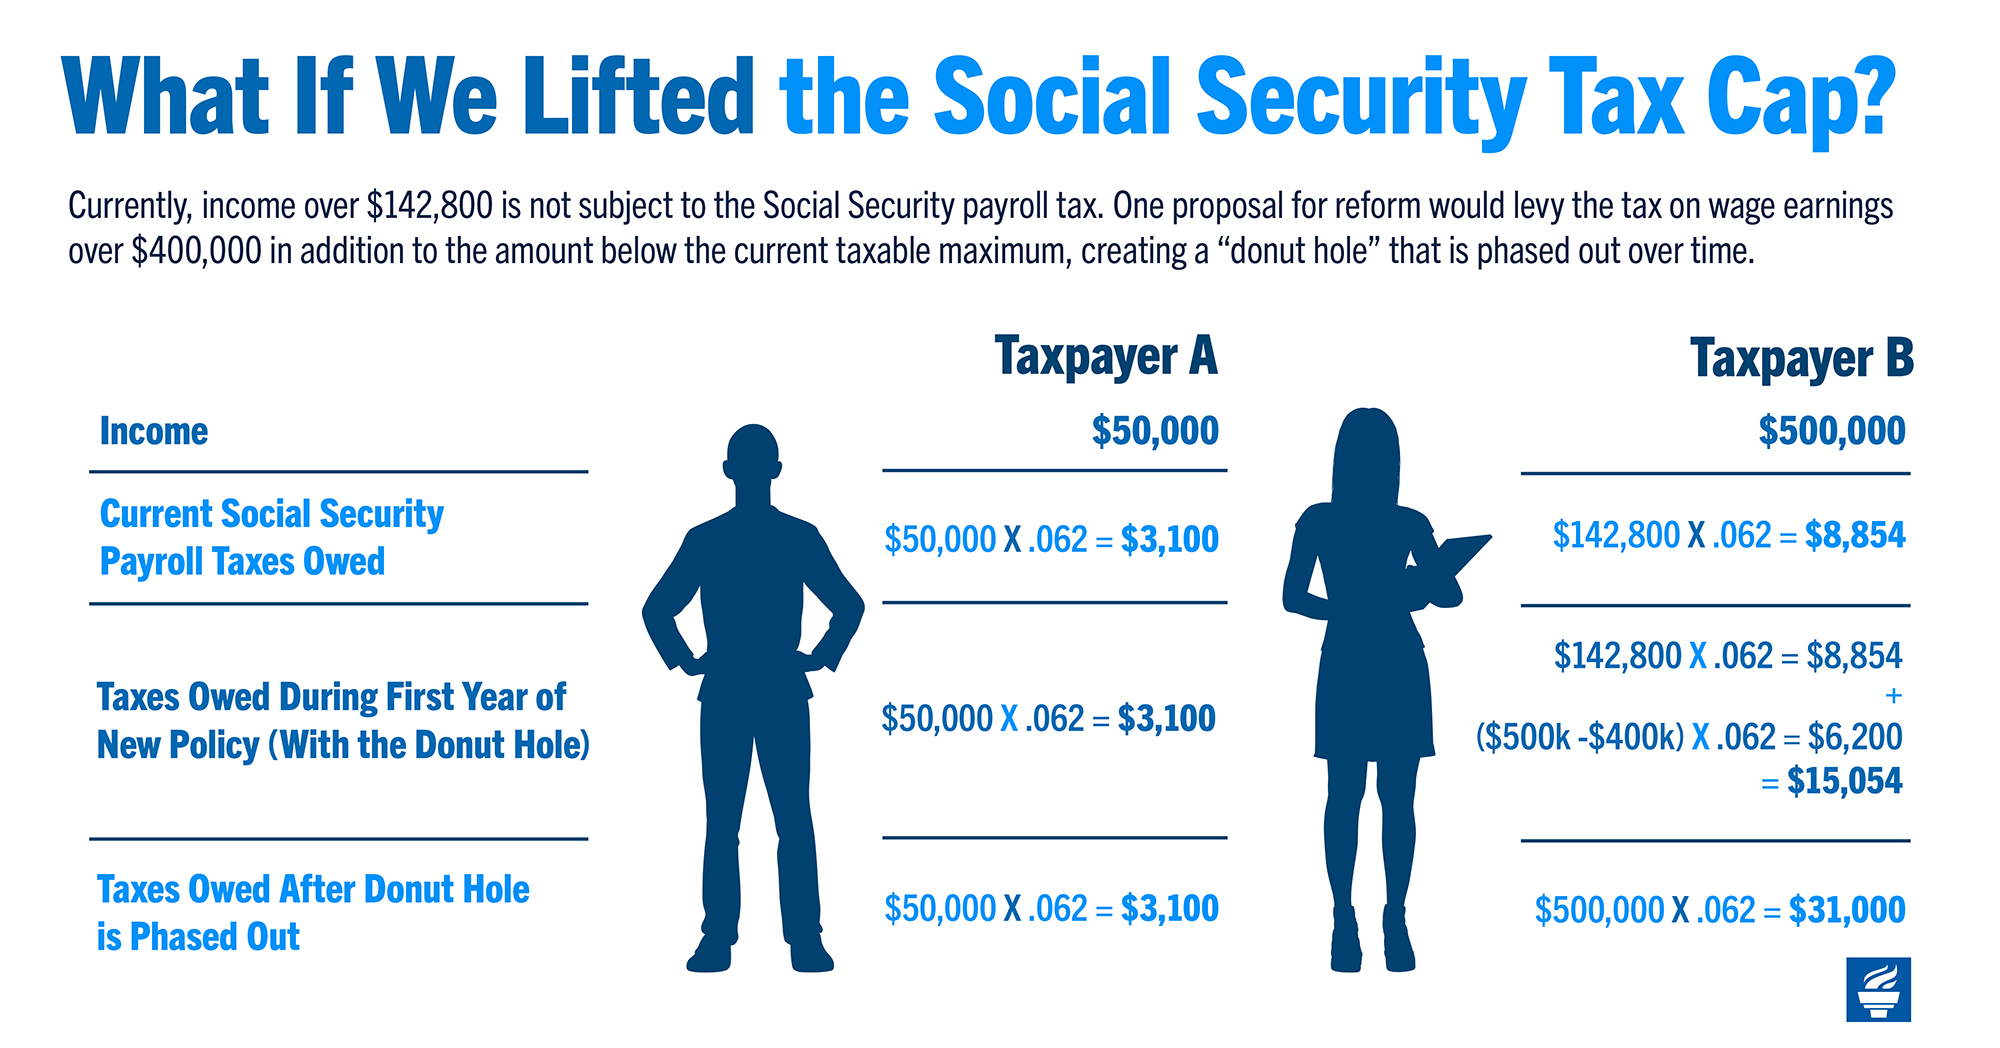 What if we lifted the Social Security tax cap?